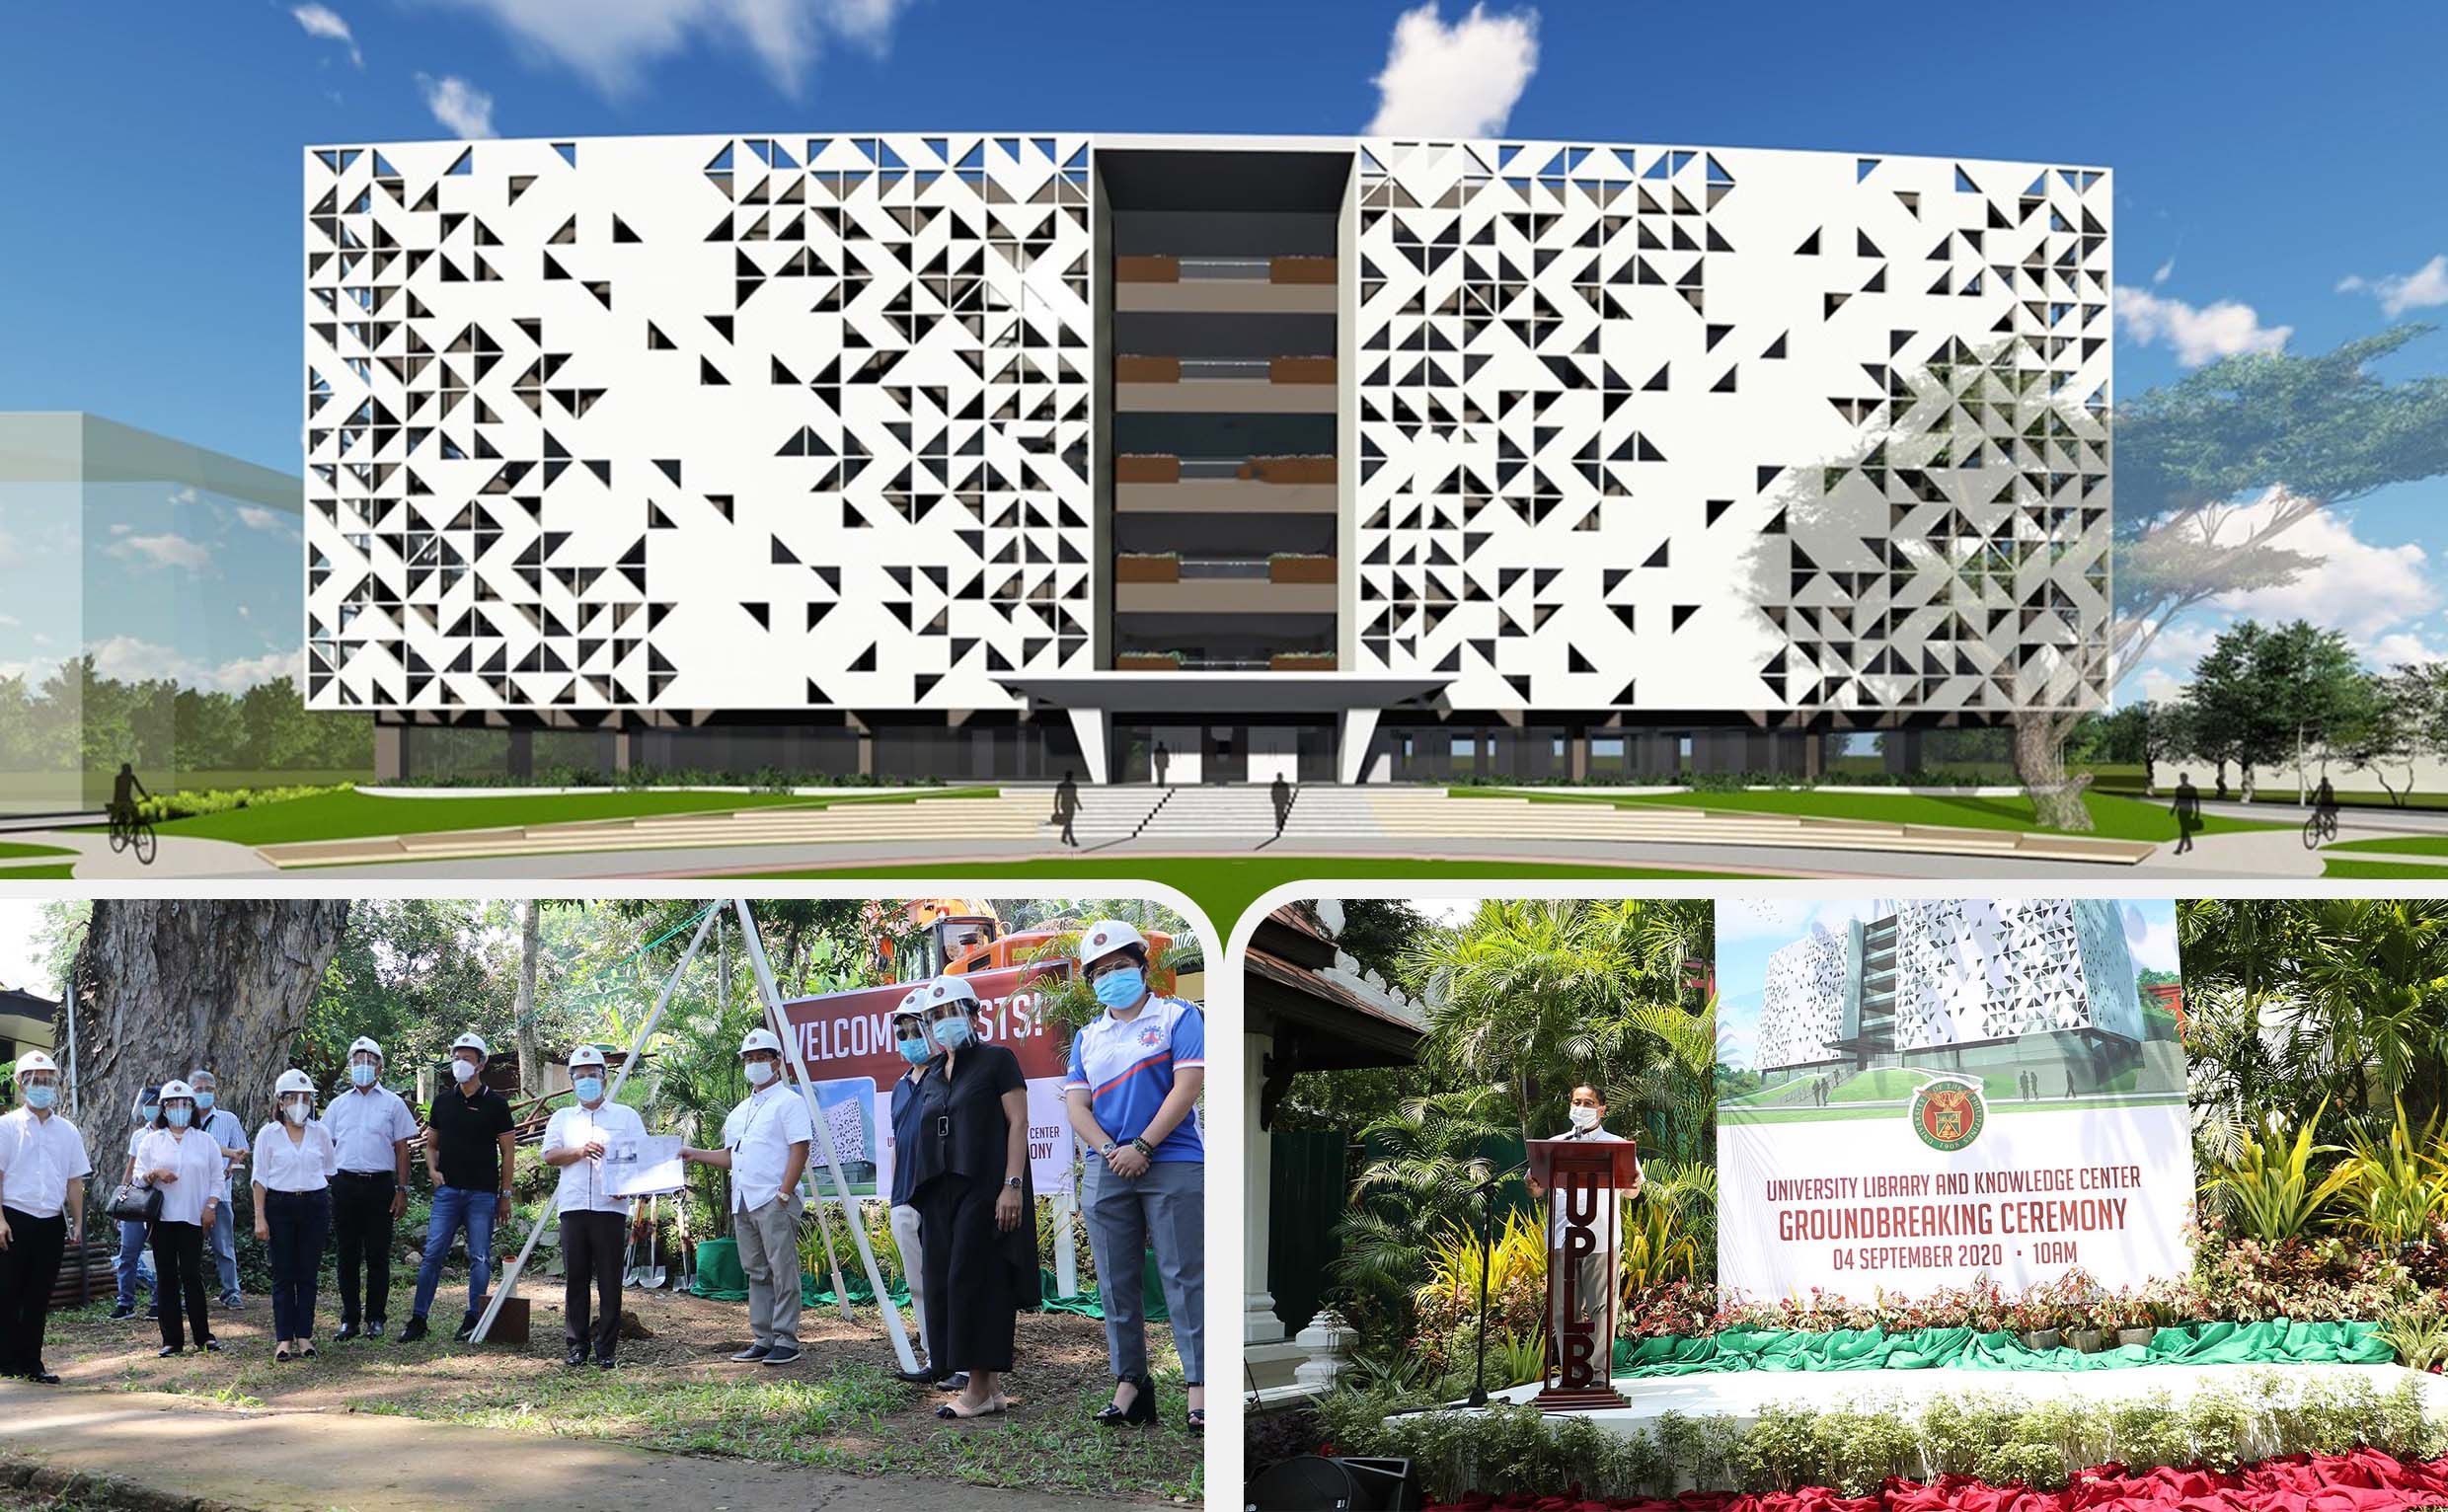 Univ Library and Knowledge Center to rise in UPLB